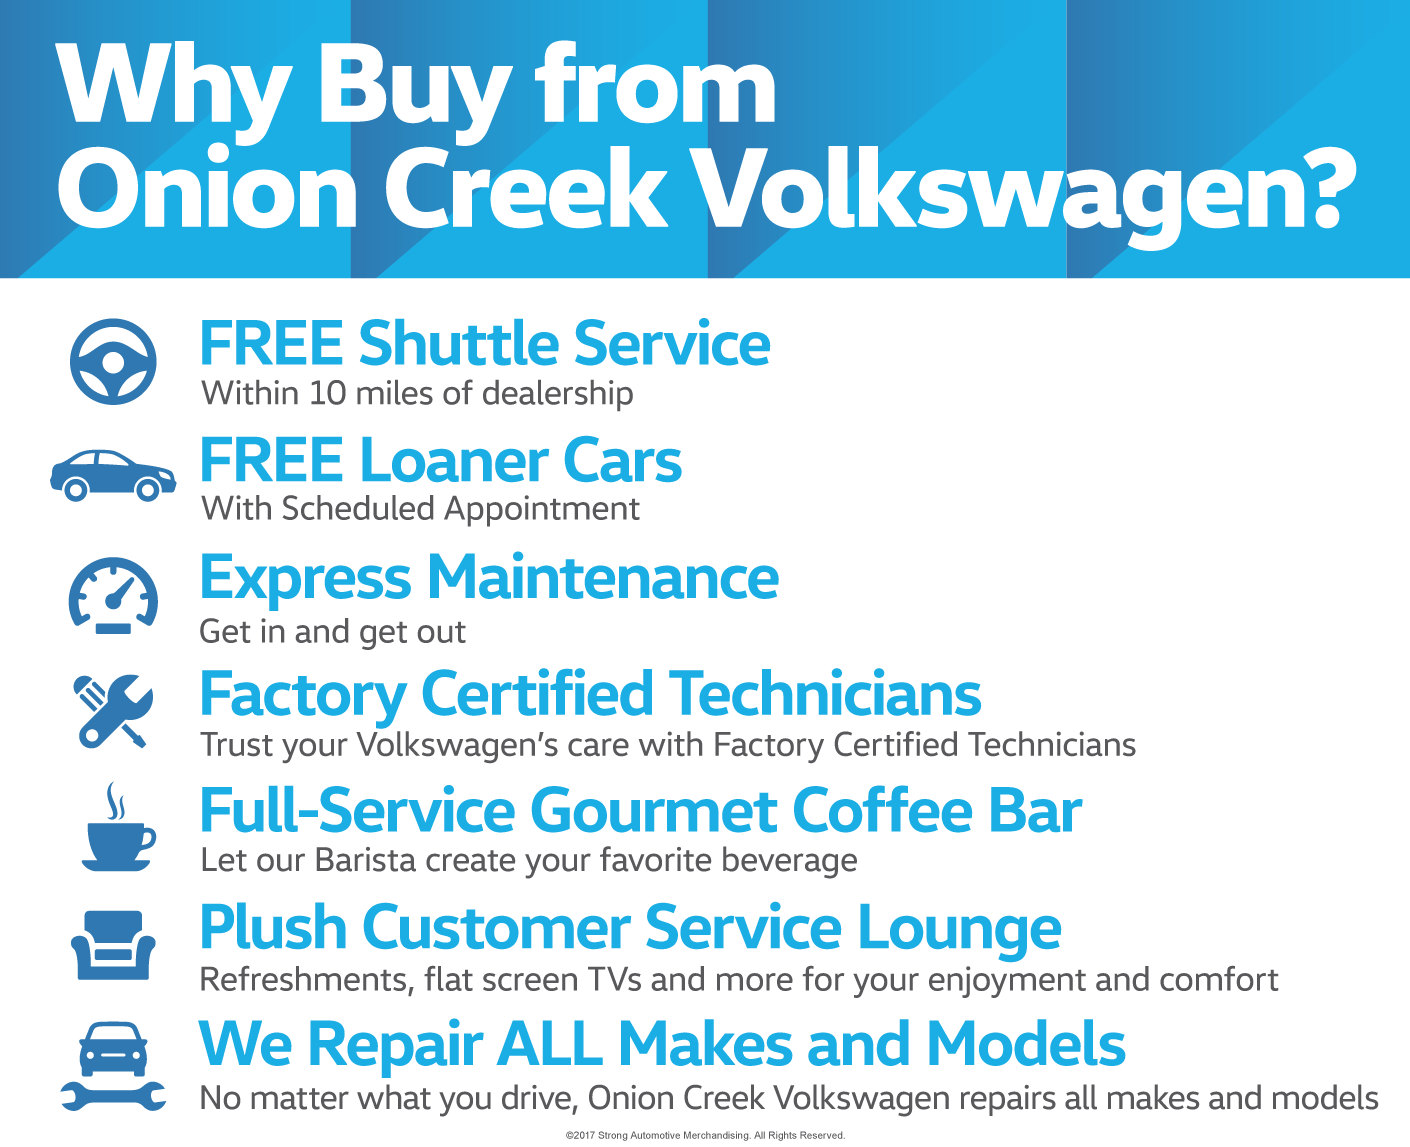 Why Buy from Onion Creek Volkswagen